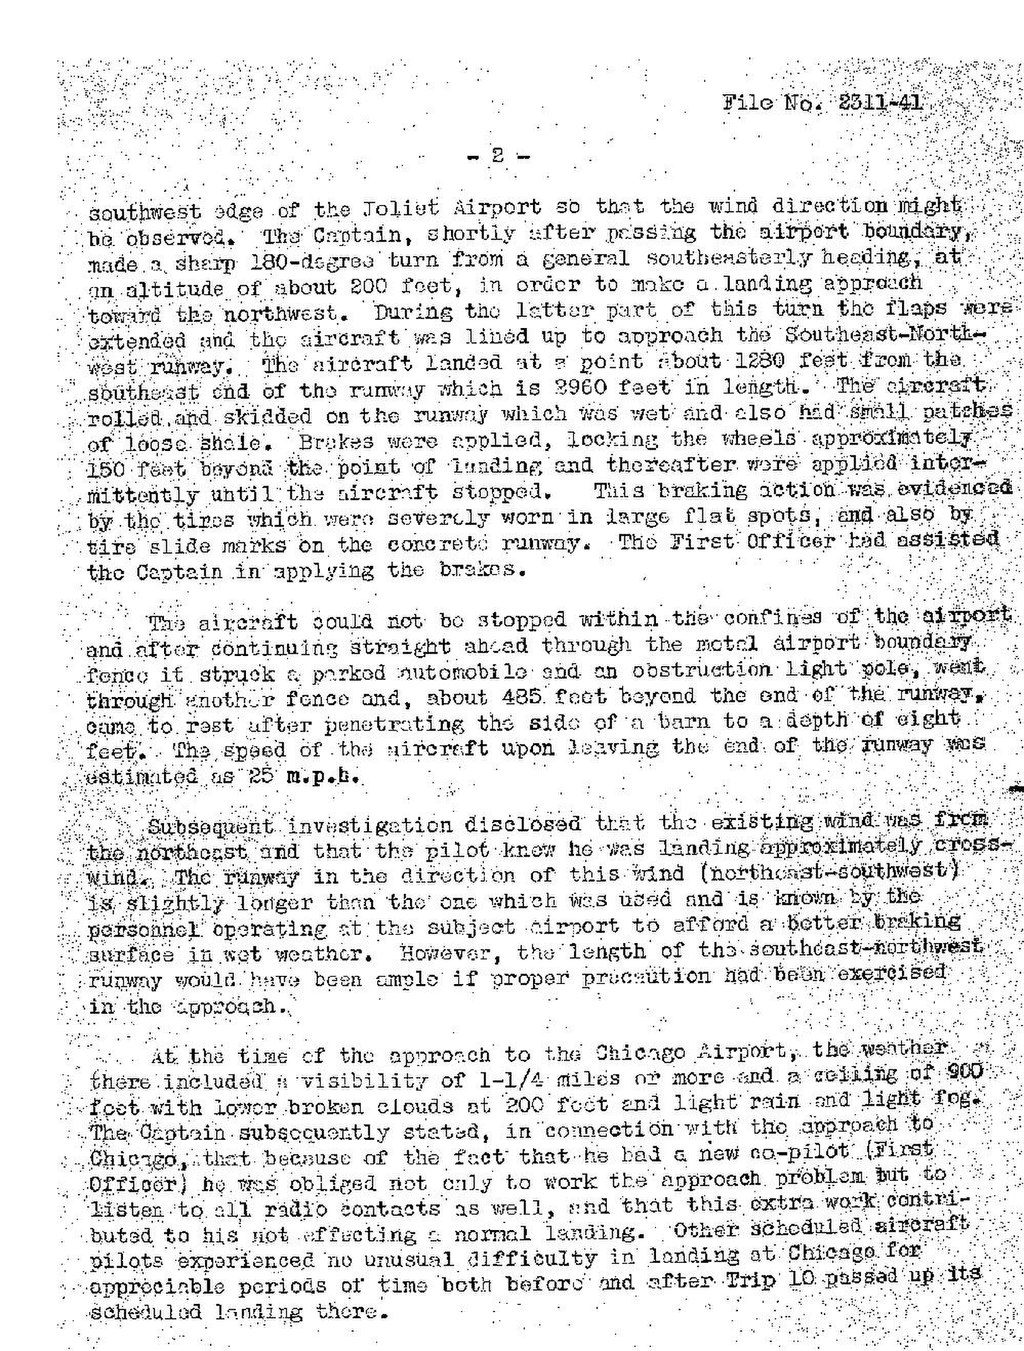 page cab accident report chicago and southern airlines flight 10